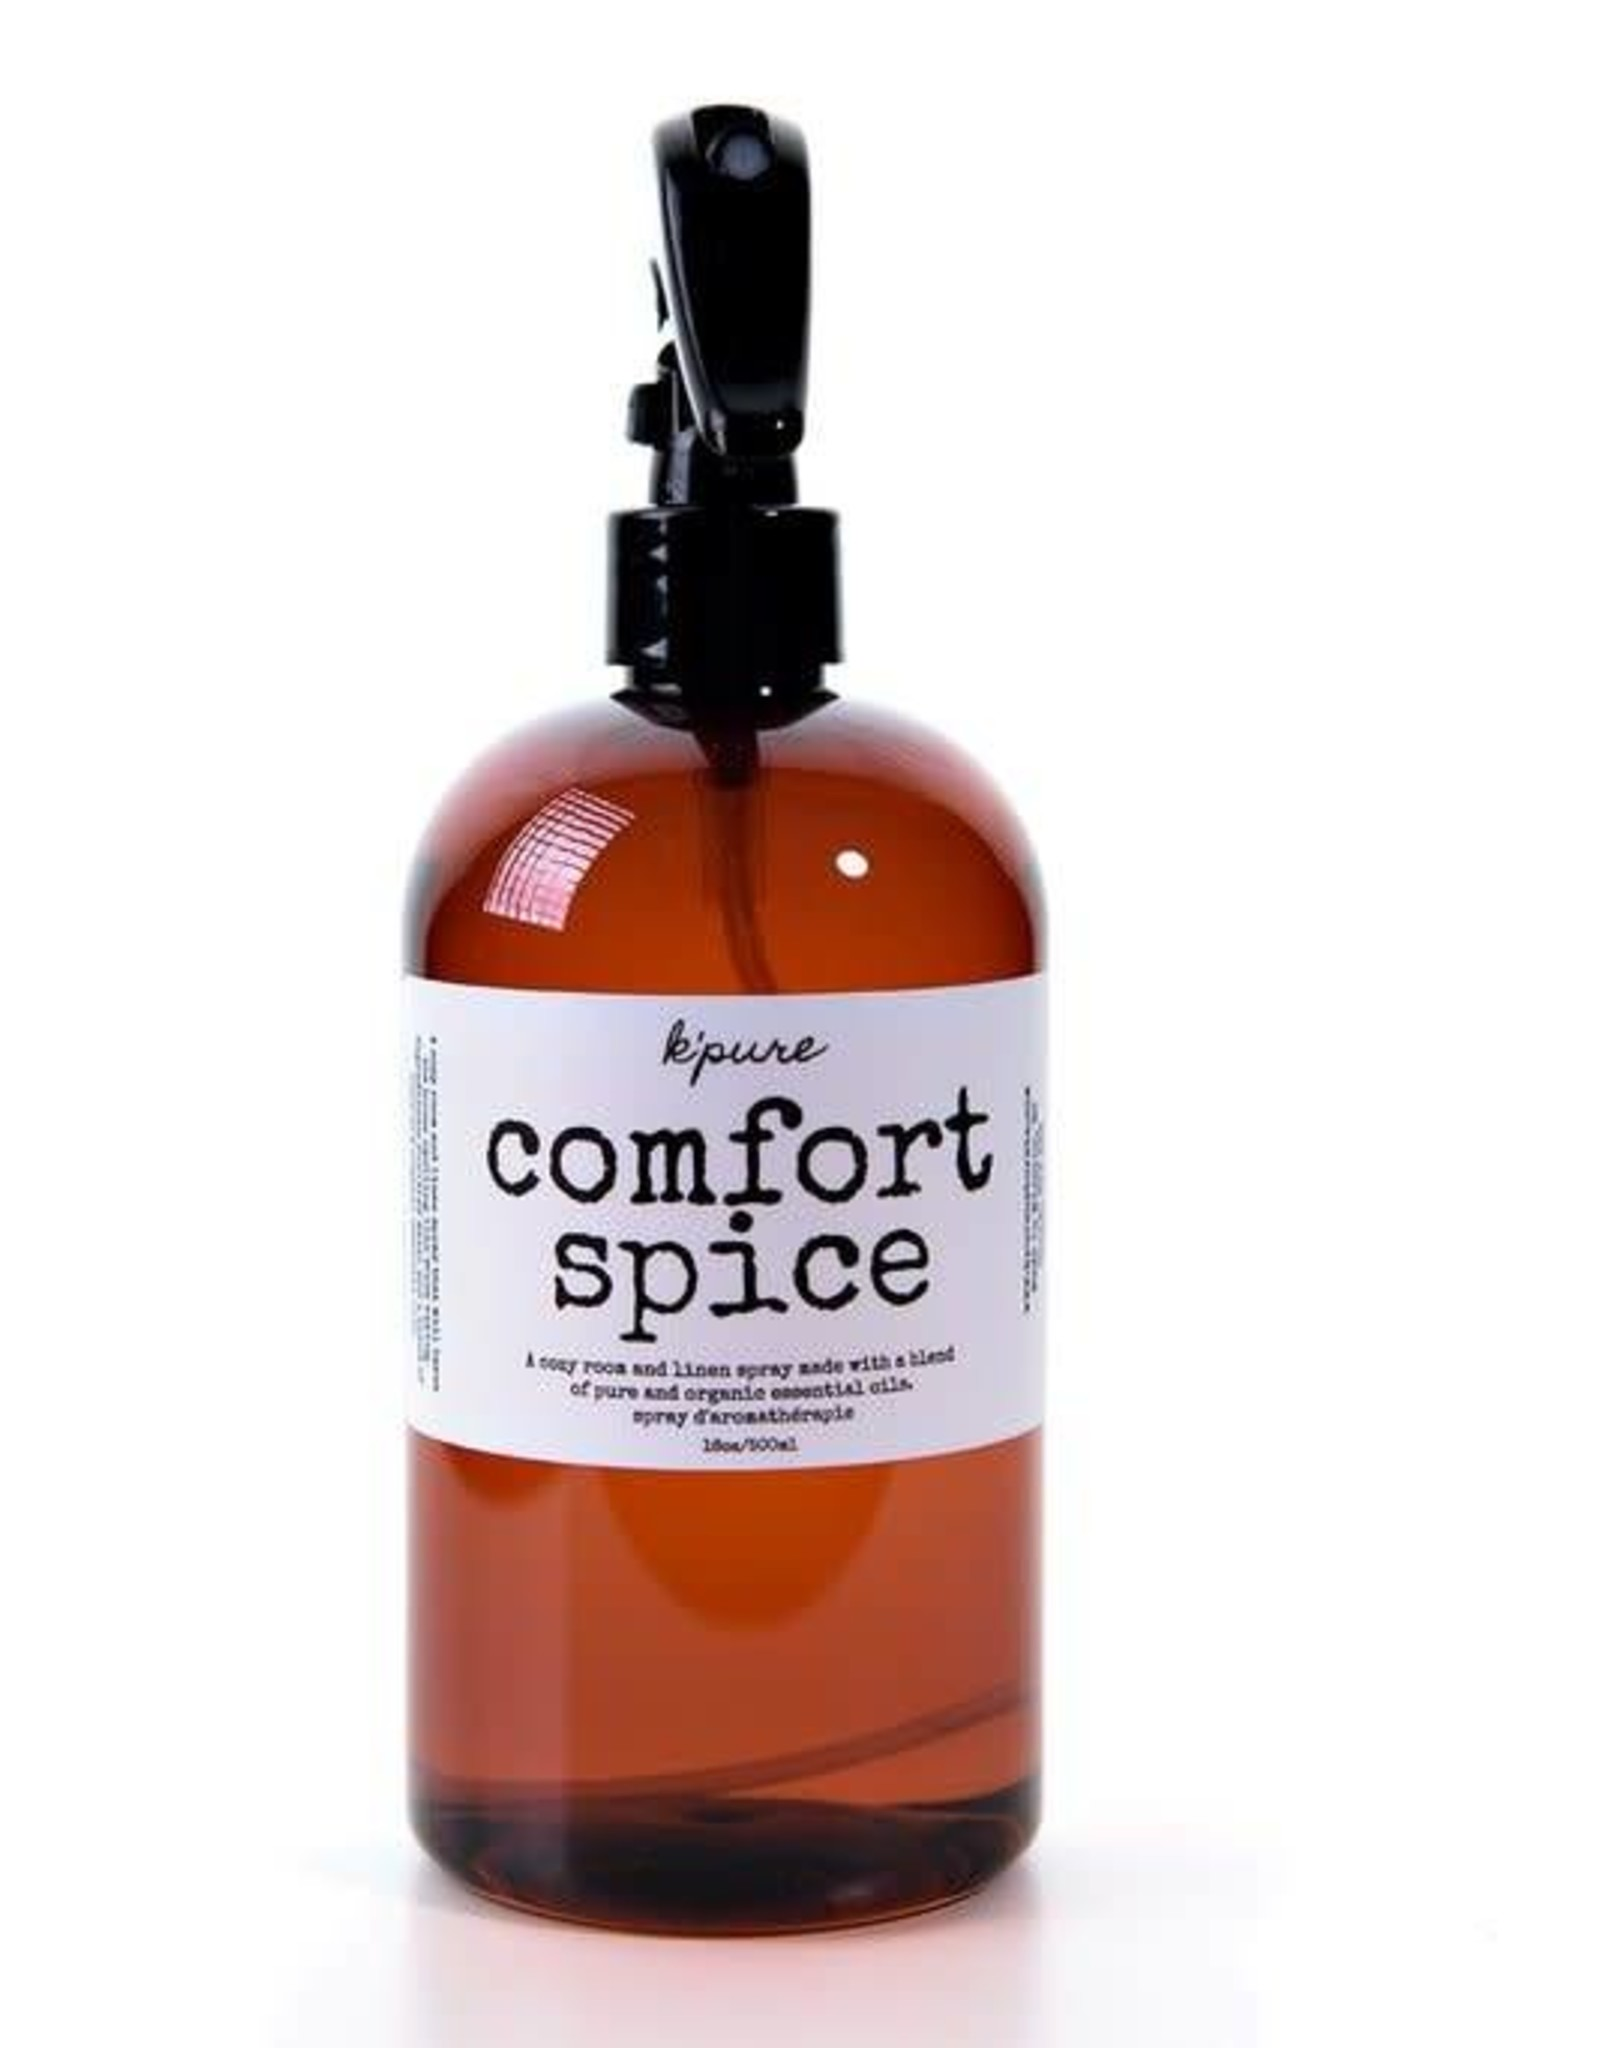 K'PURE COMFORT SPICE essential oil linen and room spray, 16oz